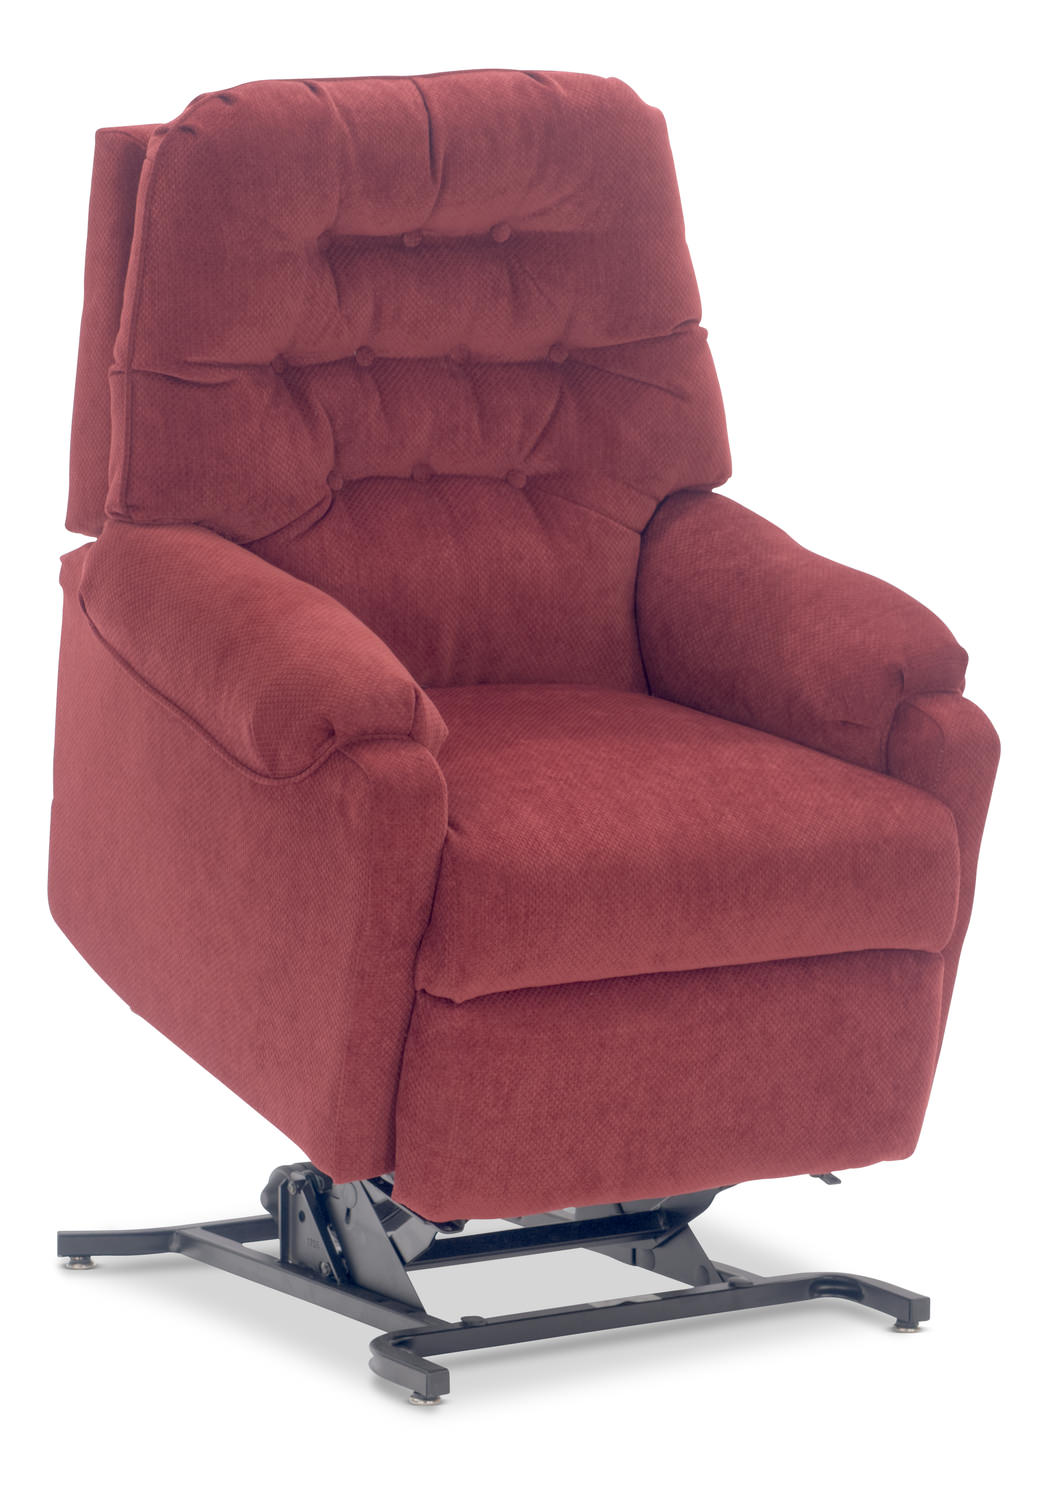 Sondra Power Lift Chair Recliner Hom Furniture